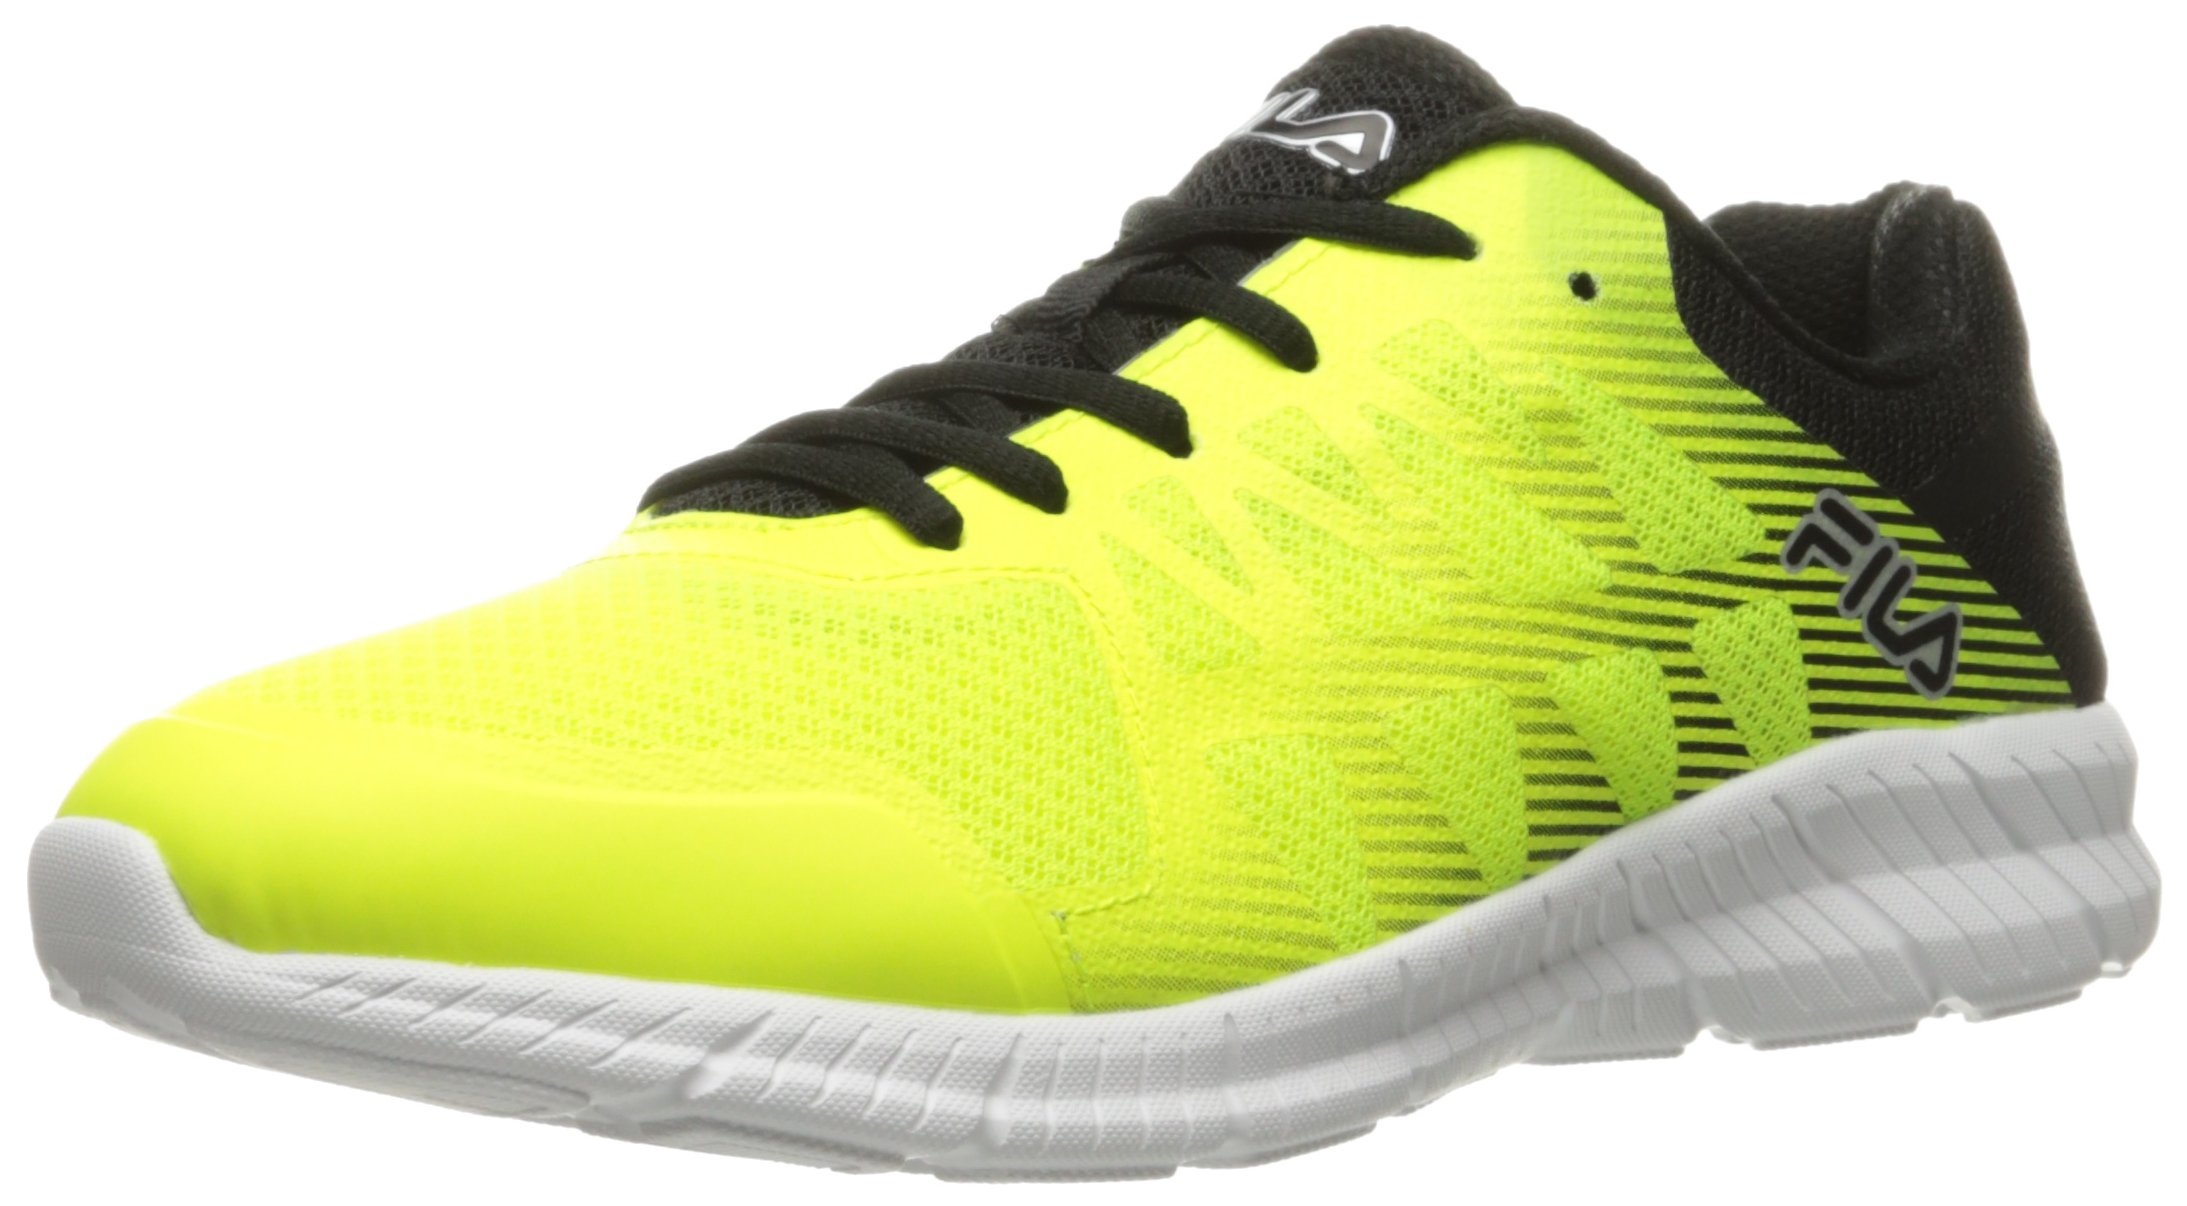 a3b9c44ec2a56 Galleon - Fila Men's Memory Finity Running Shoe, Safety Yellow/Black ...